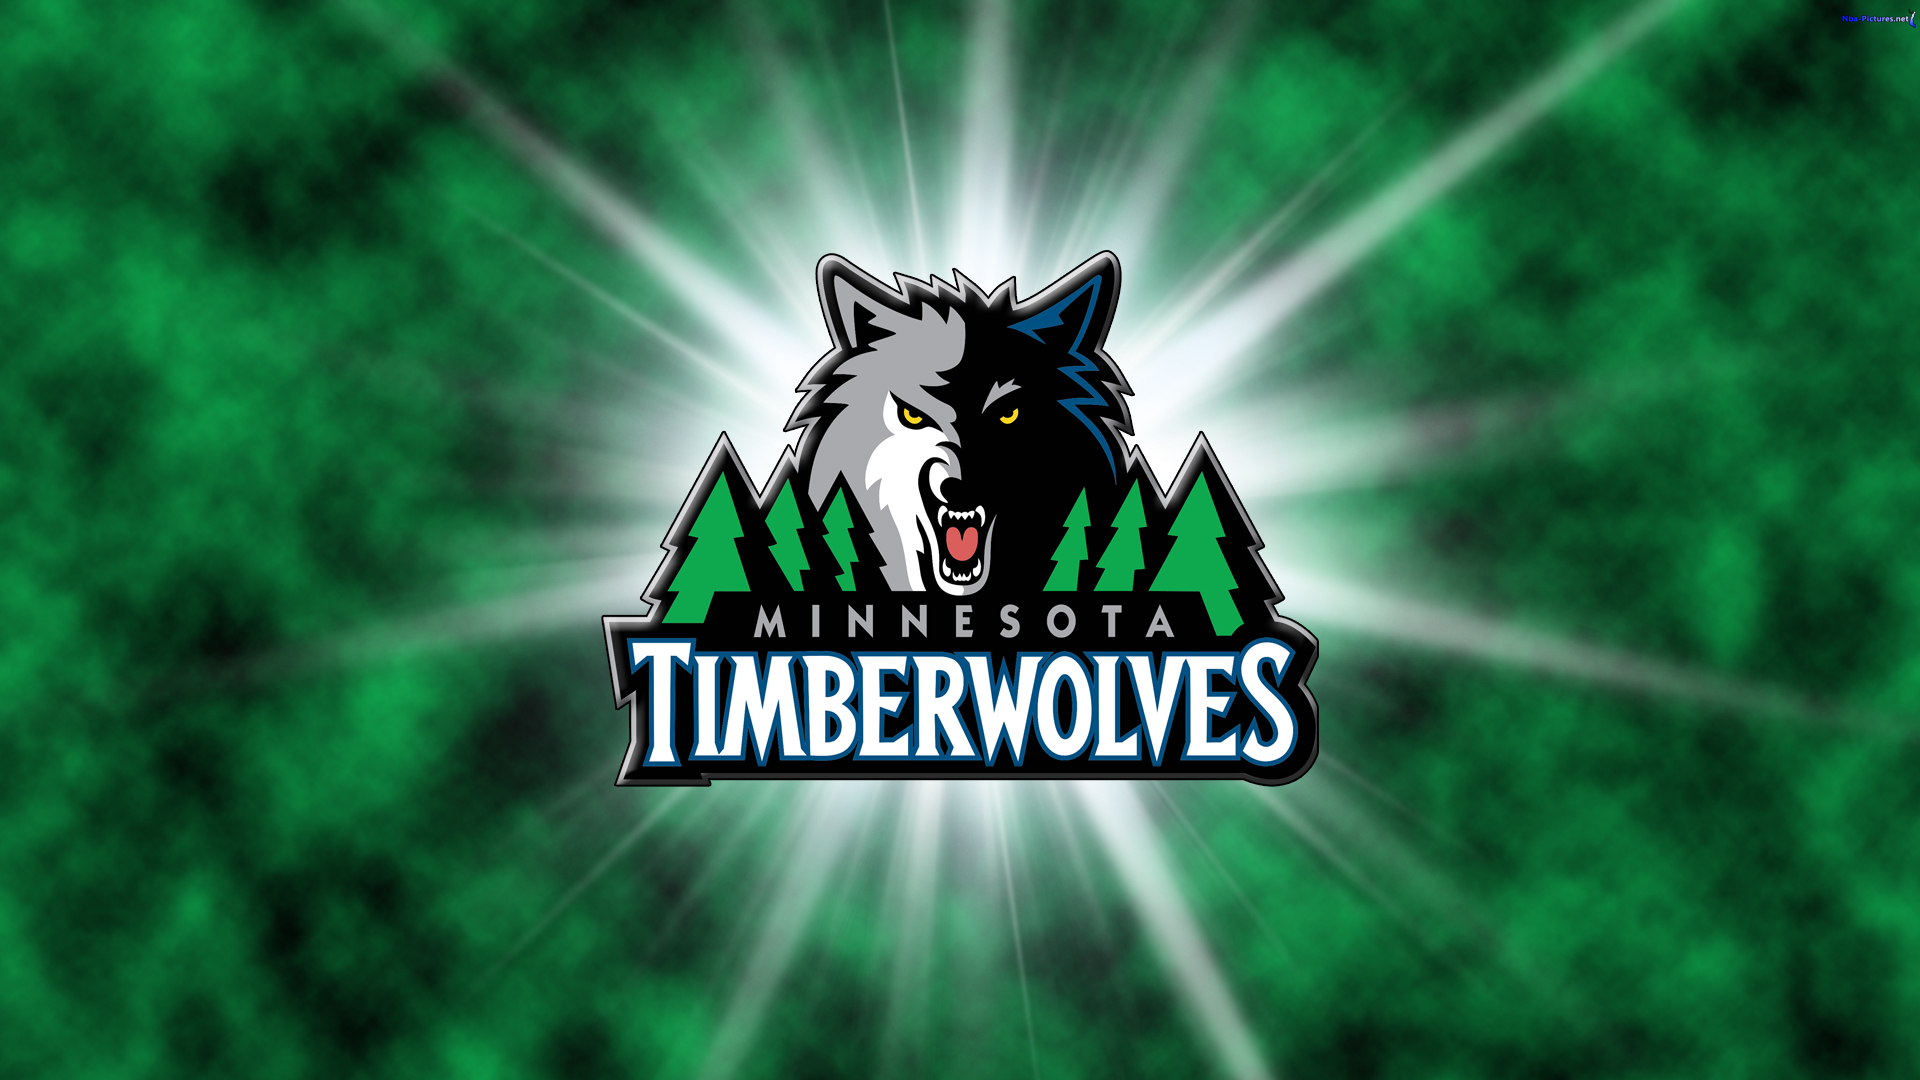 Minnesota Timberwolves Wallpaper   HD Wallpapers 1920x1080